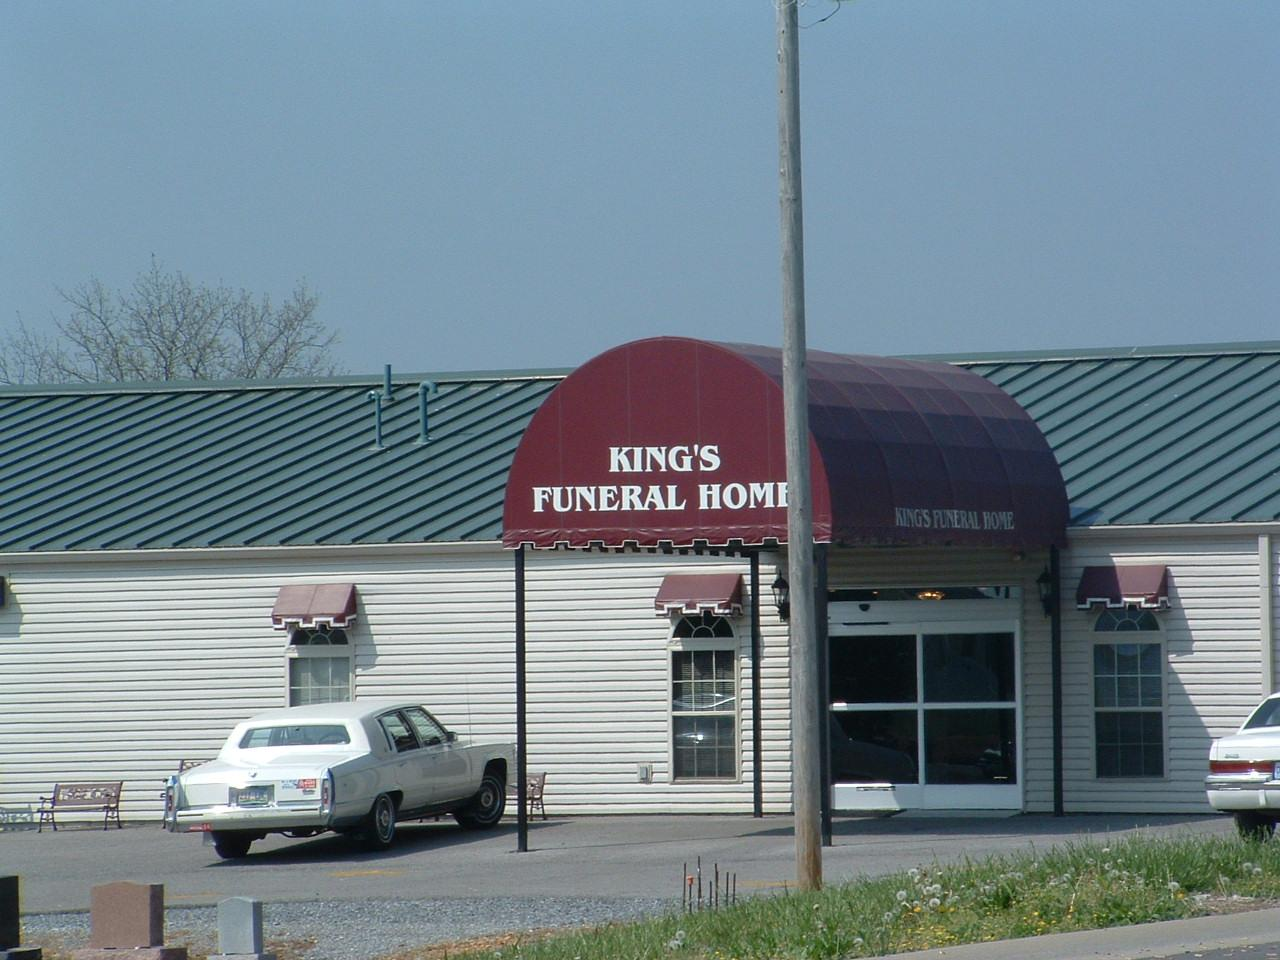 King's Funeral Home